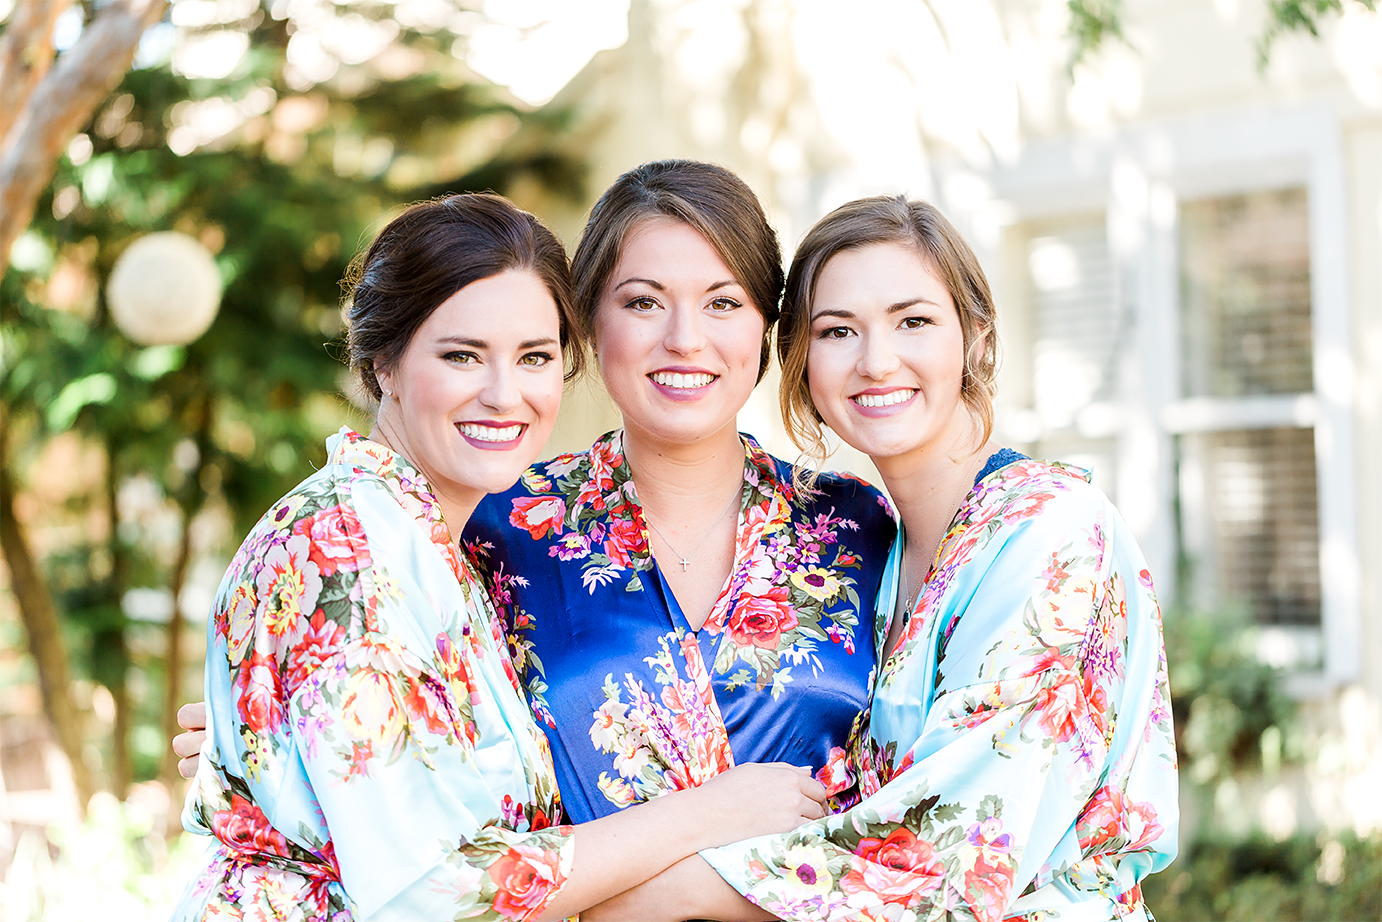 sisters getting ready for the wedding_wedding photographer jacksonville fl.png